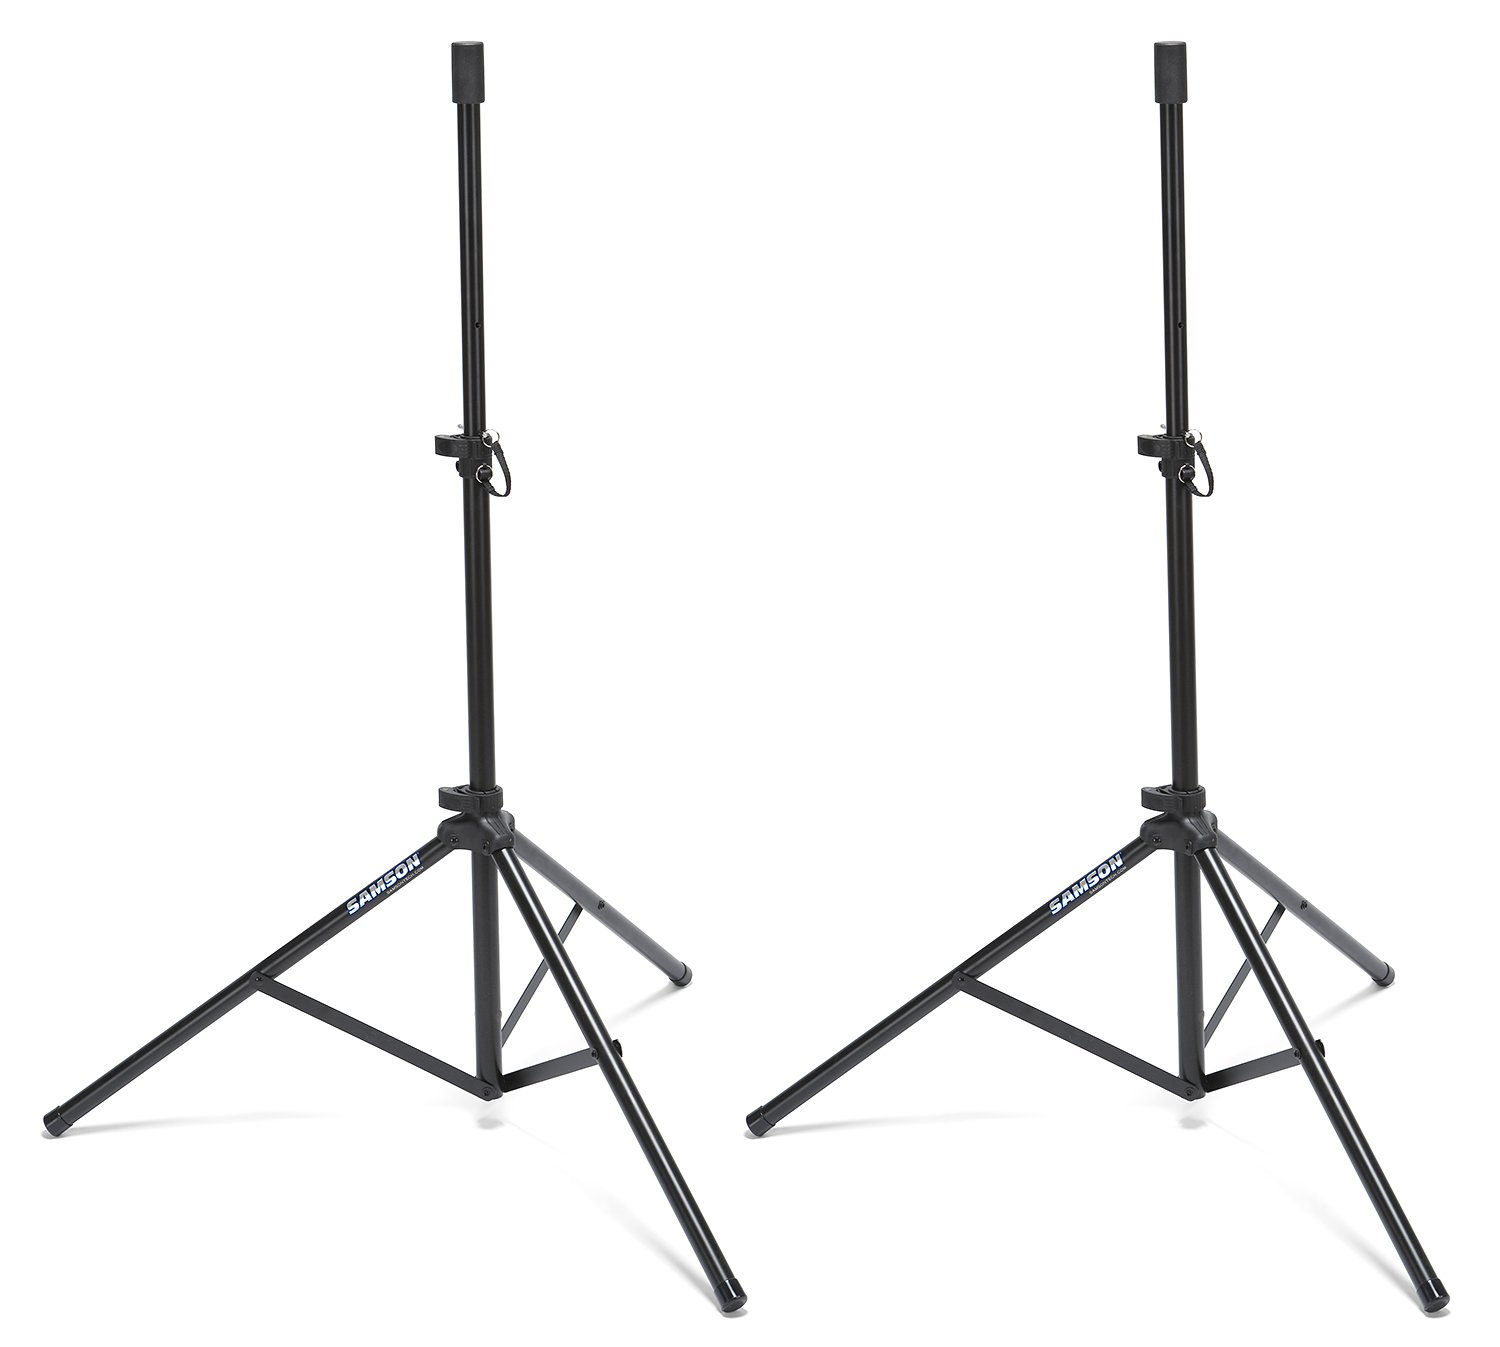 Samson LS50P Lightweight Speaker Stands Samson Audio Samson Technologies SALS50P